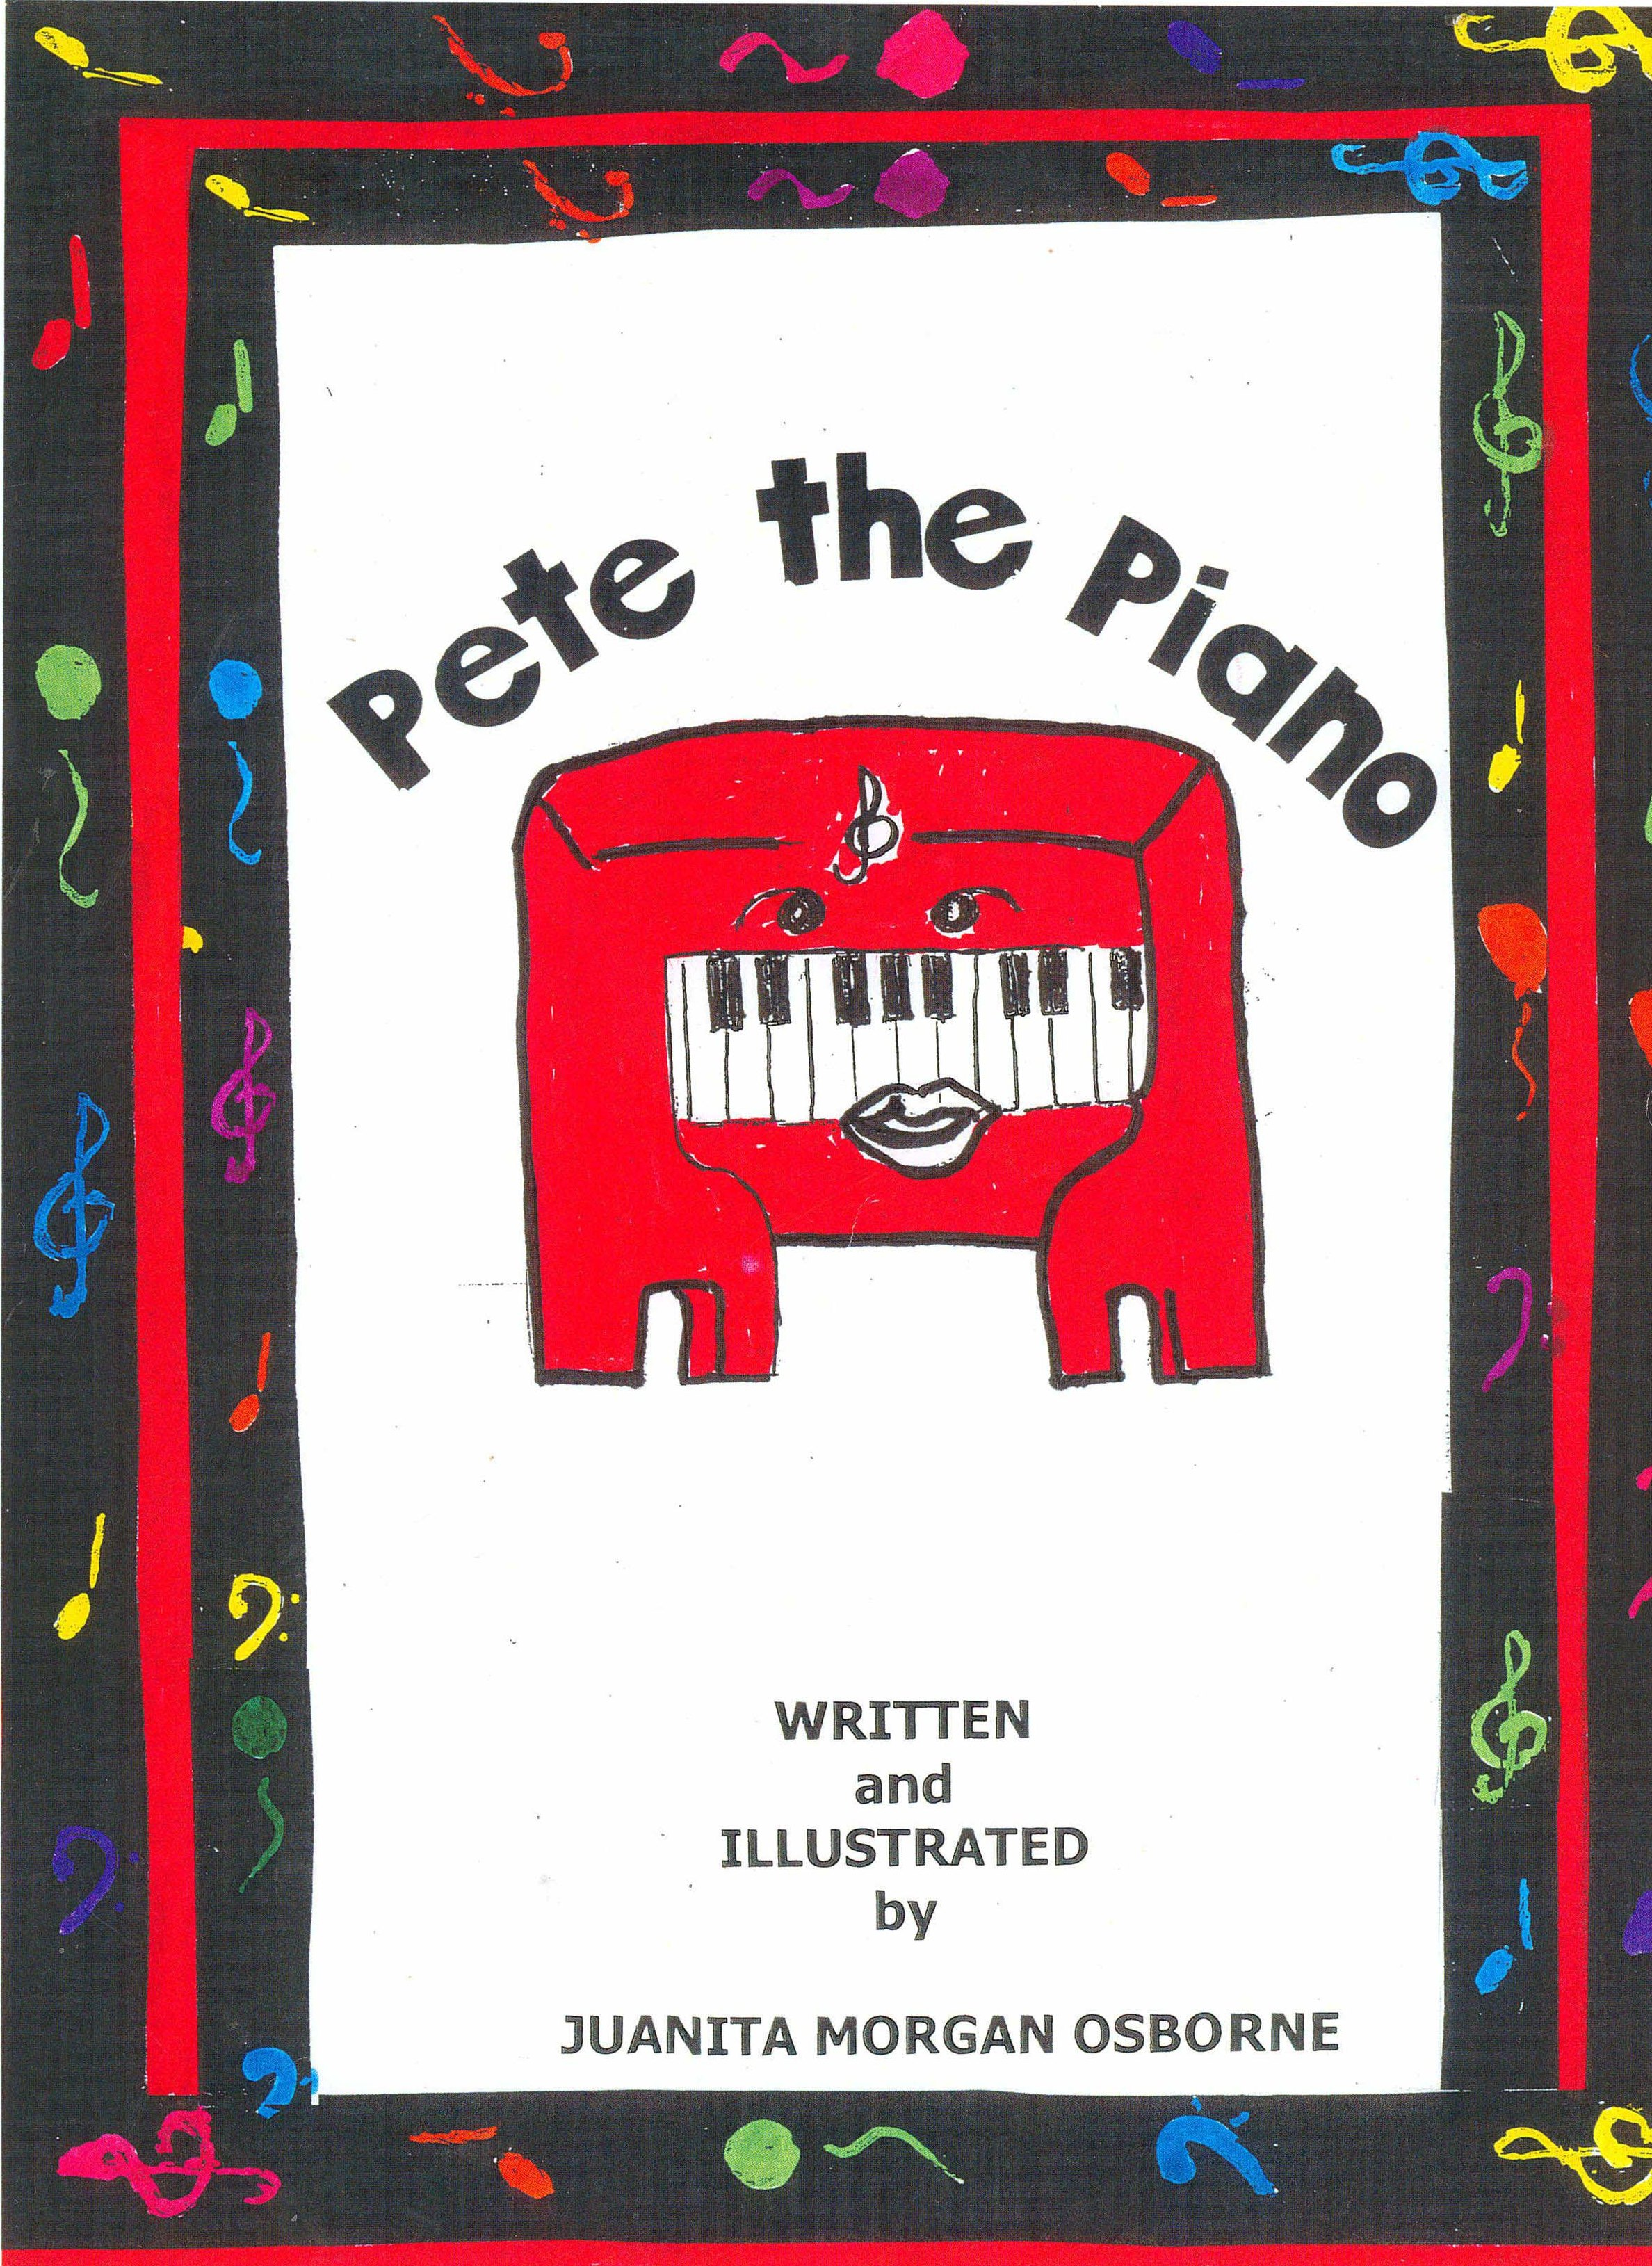 Pete the Piano